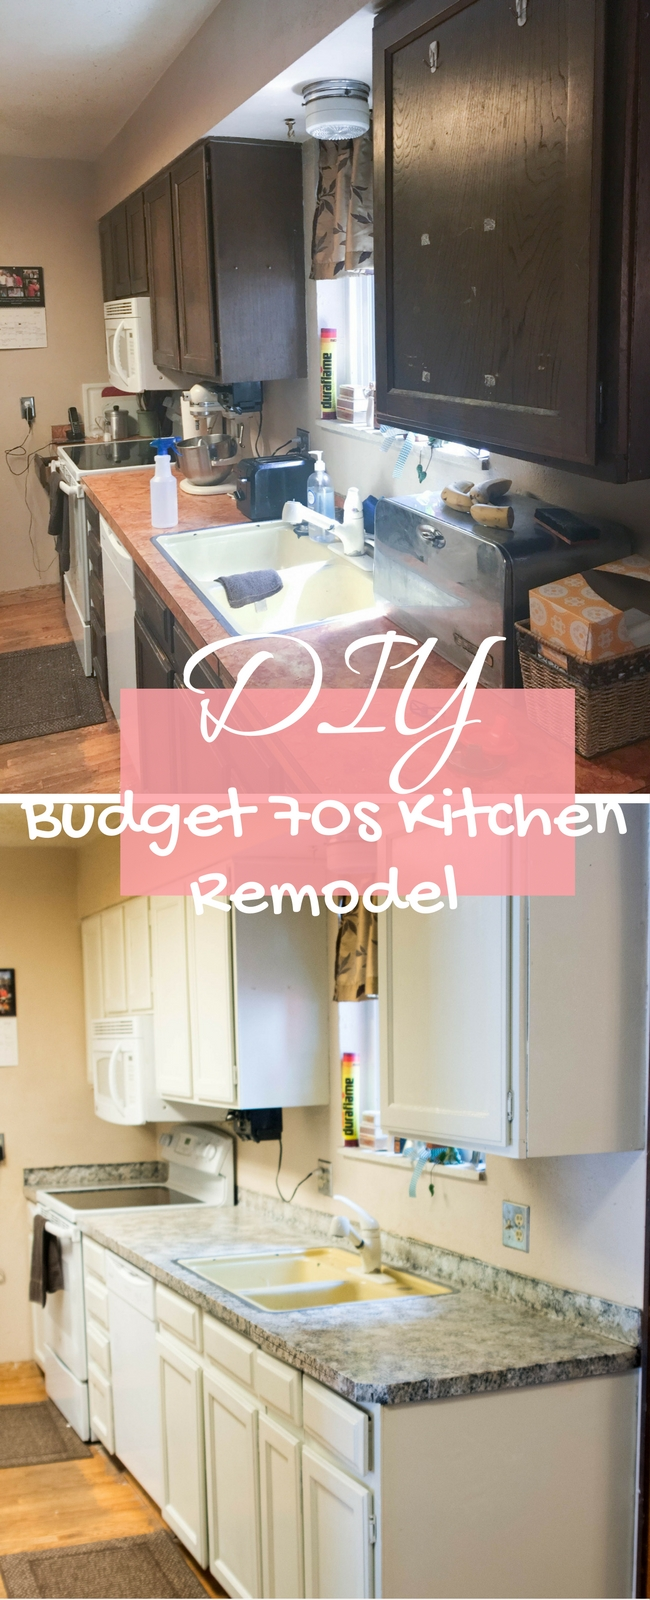 Budget 70s Kitchen Remodel